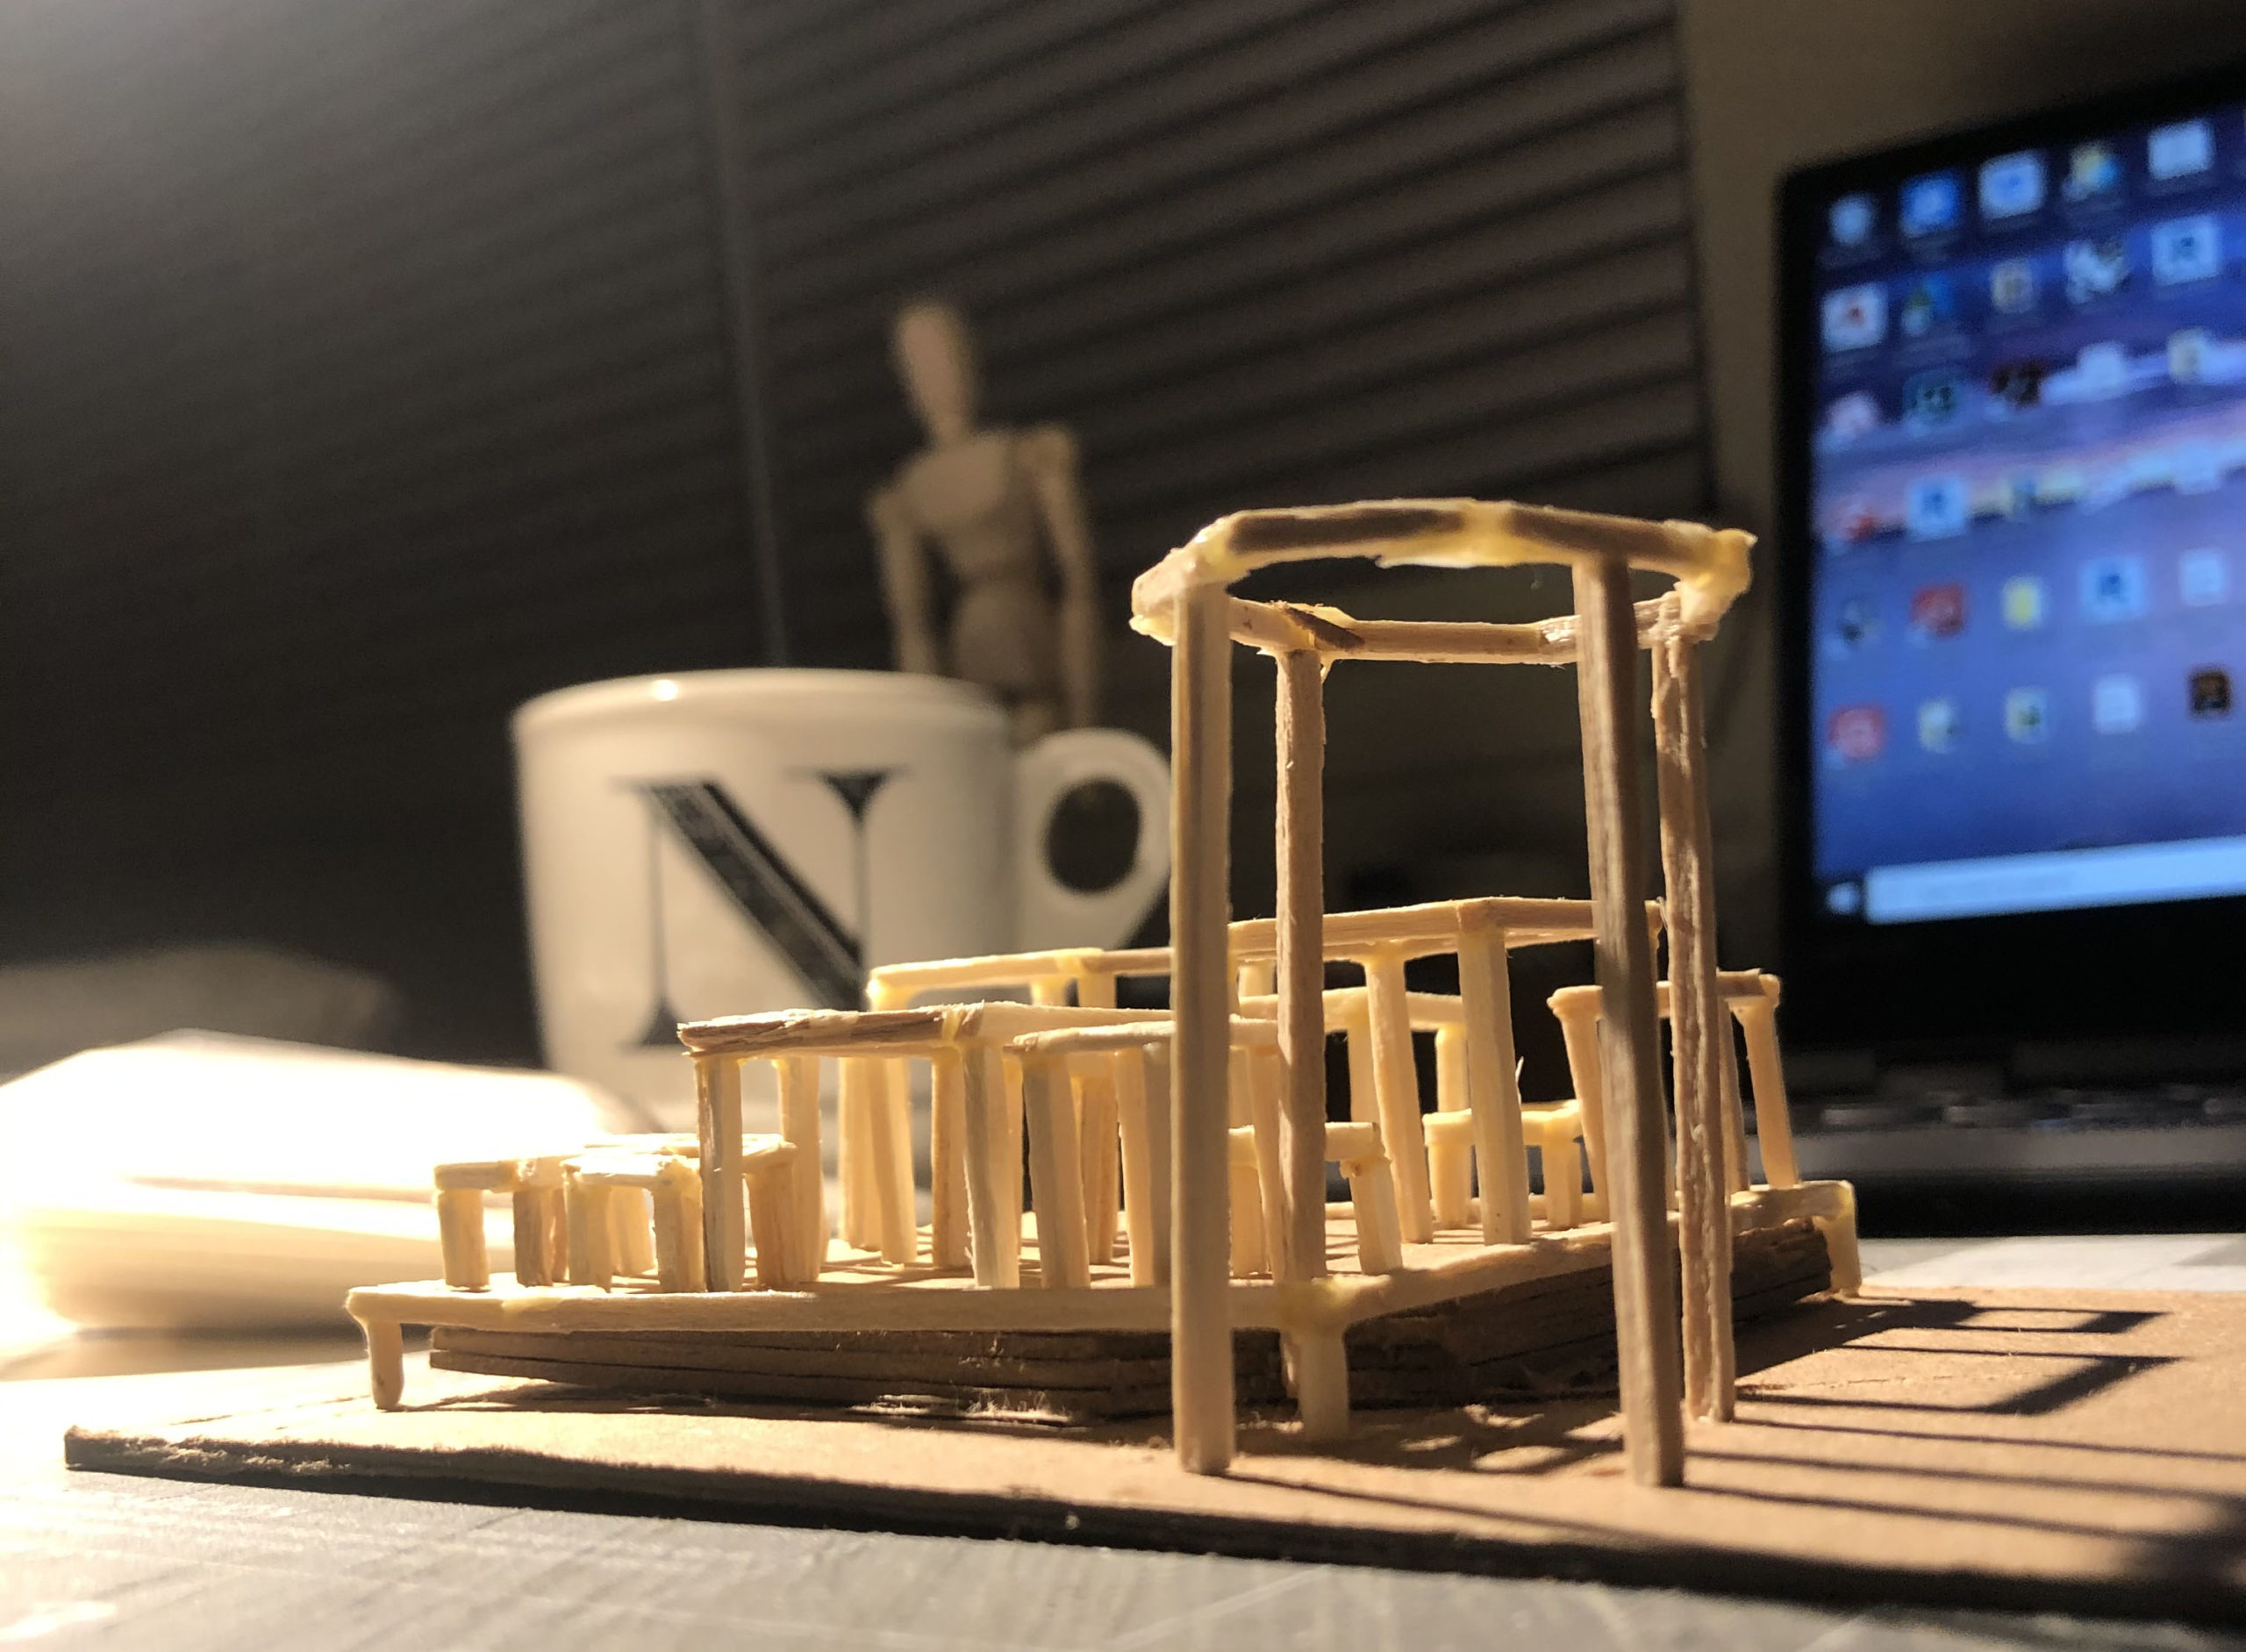 Architecture model with a coffee mug and a computer screen in the background.